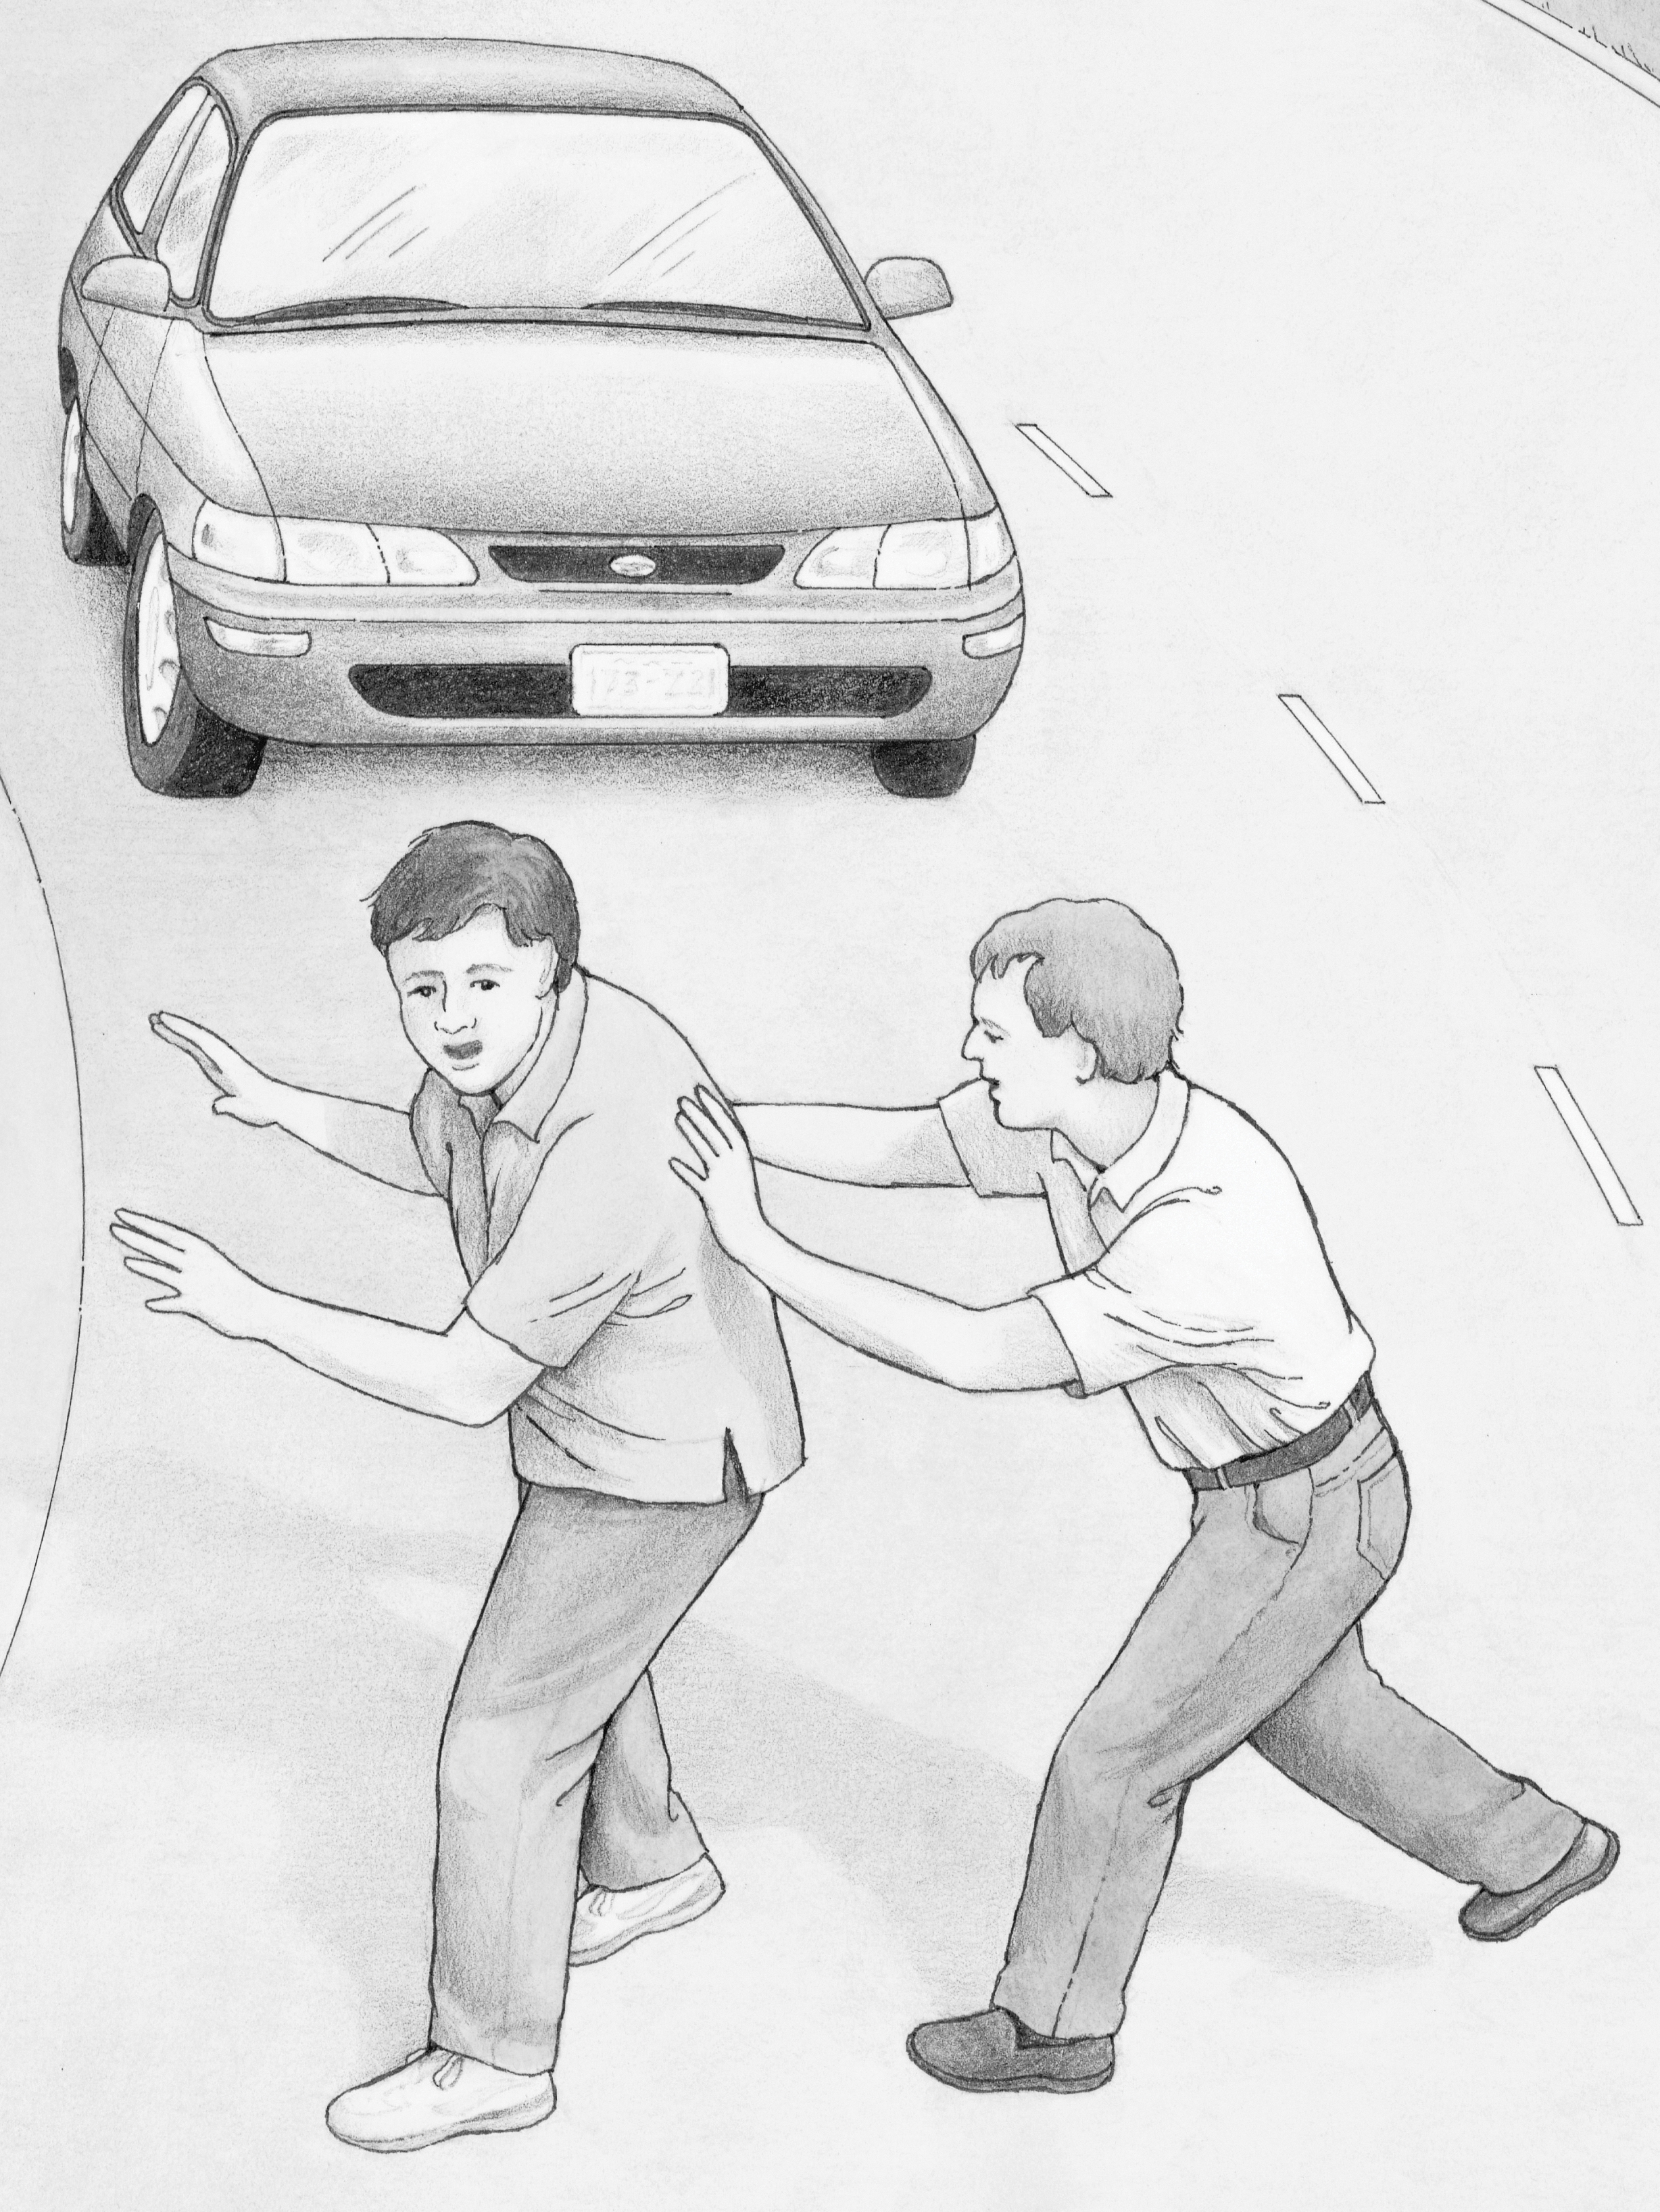 One boy pushing another out of the path of an oncoming car.